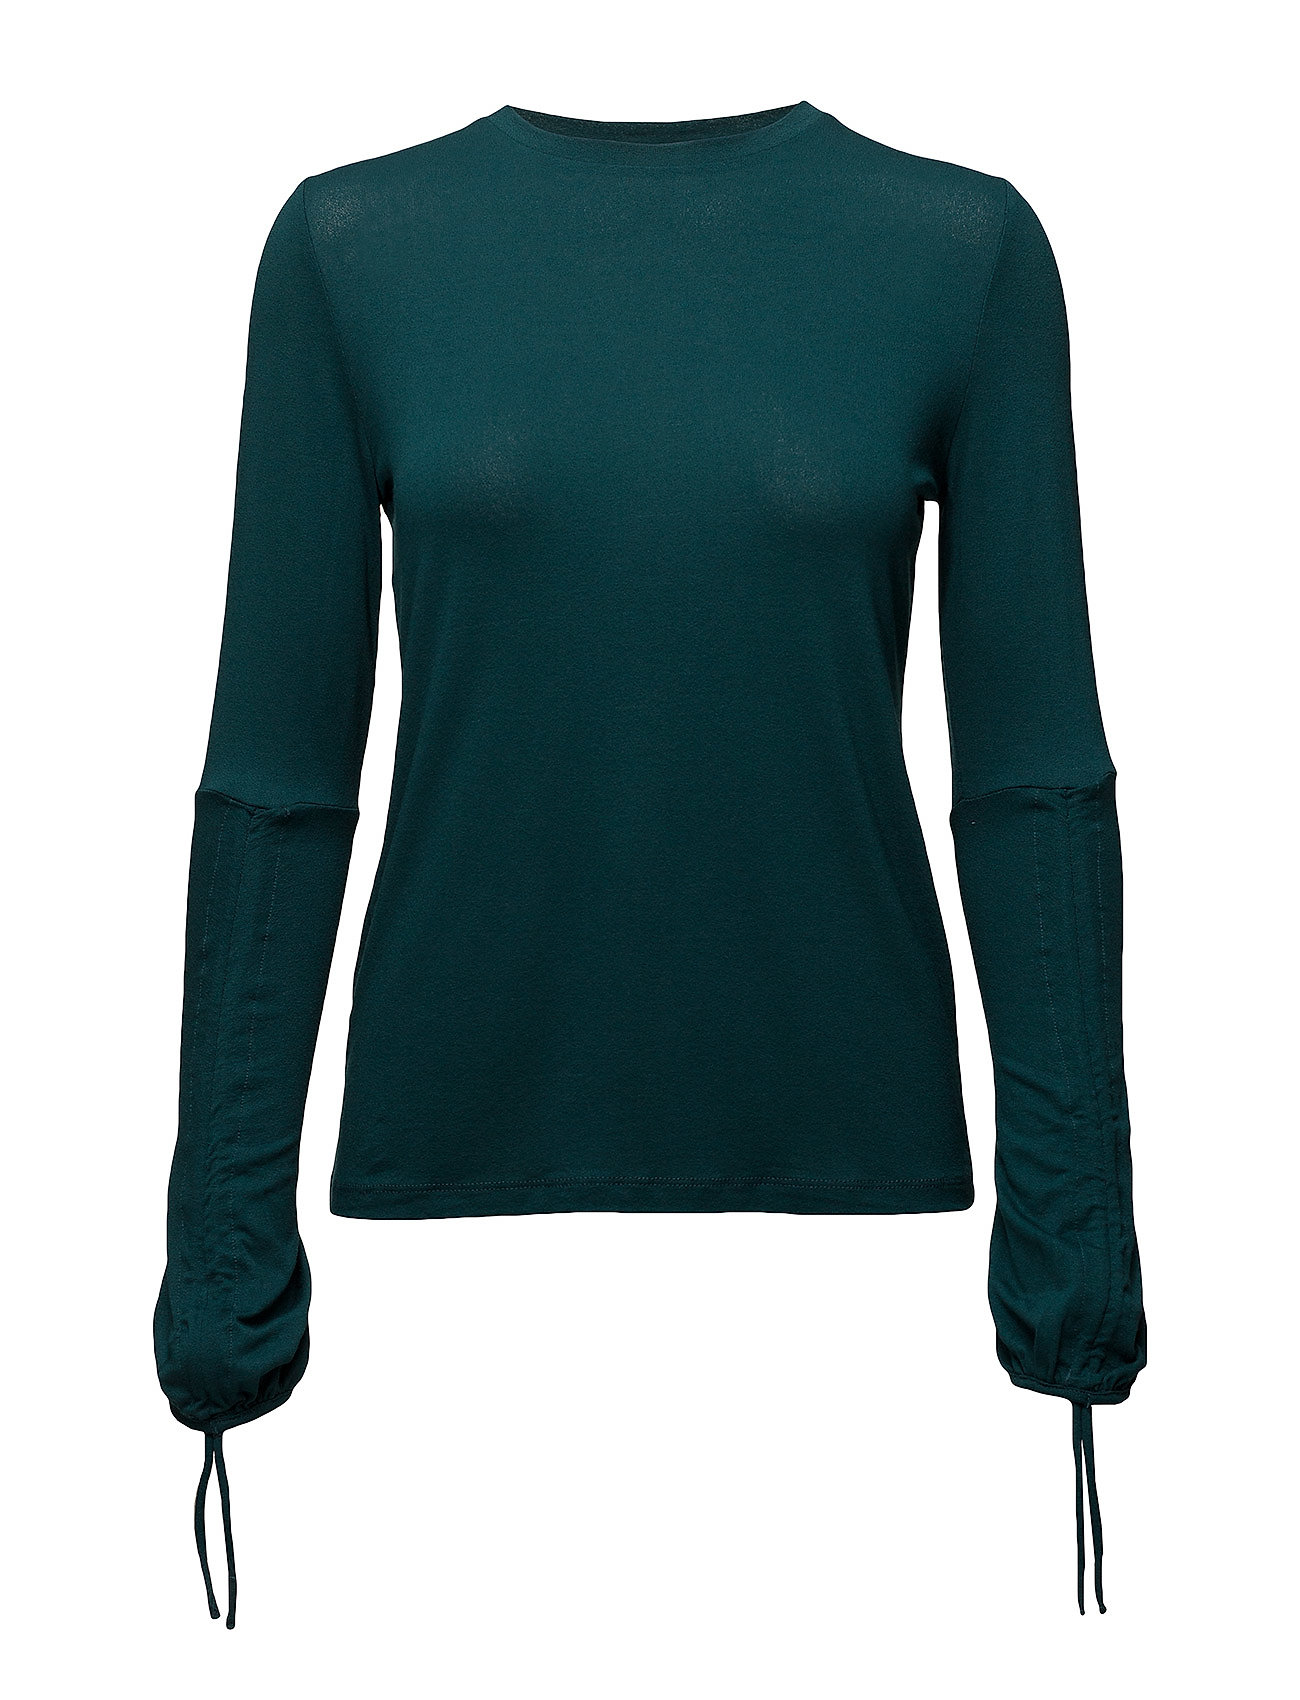 Image of Puffed Sleeves T-Shirt (2789555631)